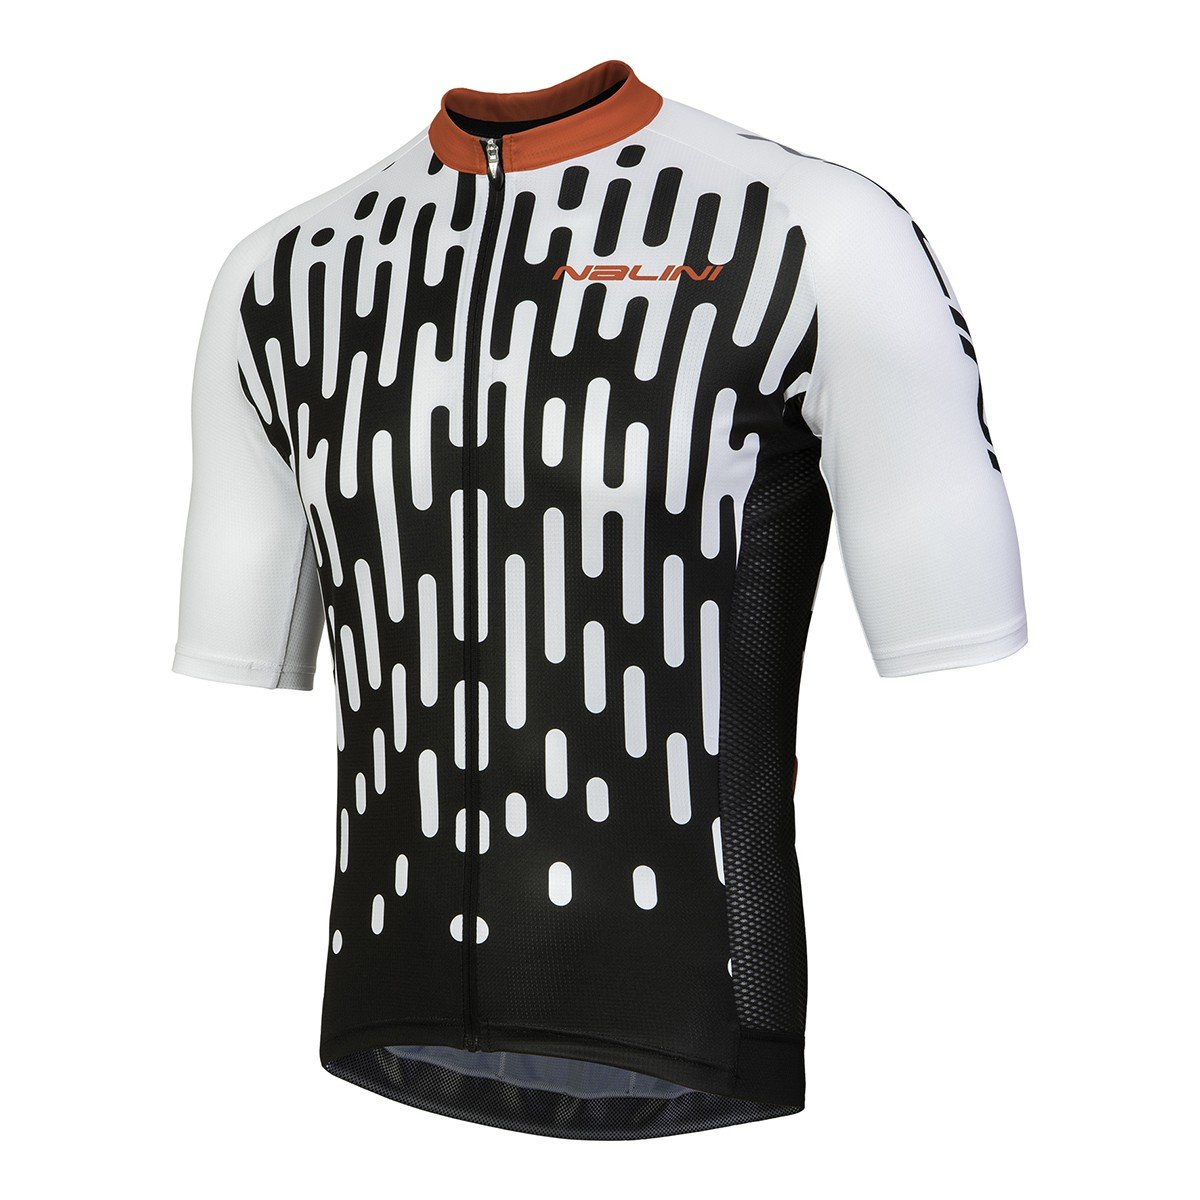 78aa531ff Available at  http   nalini.cc products nalini-podio-ss-jersey-black-white utm source twitter utm medium publishing utm campaign random product utm content   ...